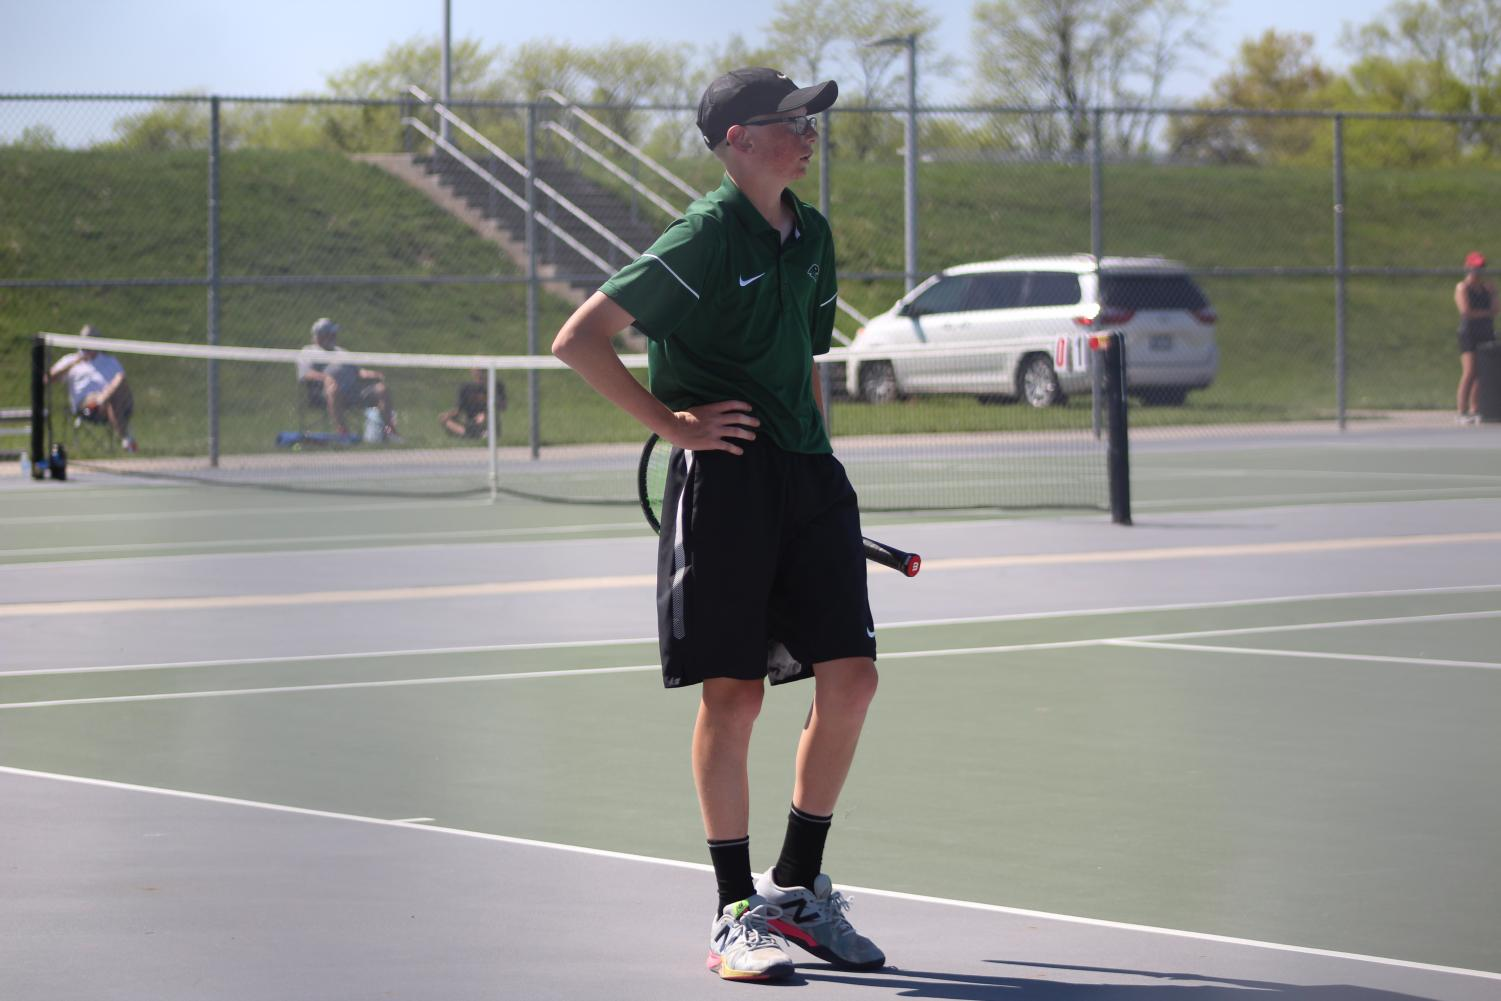 """In his singles match freshman Mason Gates plays against the Winnetonka High School Griffins on May 7 during districts. Mason is the No. 2 on varsity, and the team won the match 5-0, however Mason's match was unfinished due to the team winning. """"The only reason we won is because at the end of the day, we had more grit,"""" said Mason Gates."""